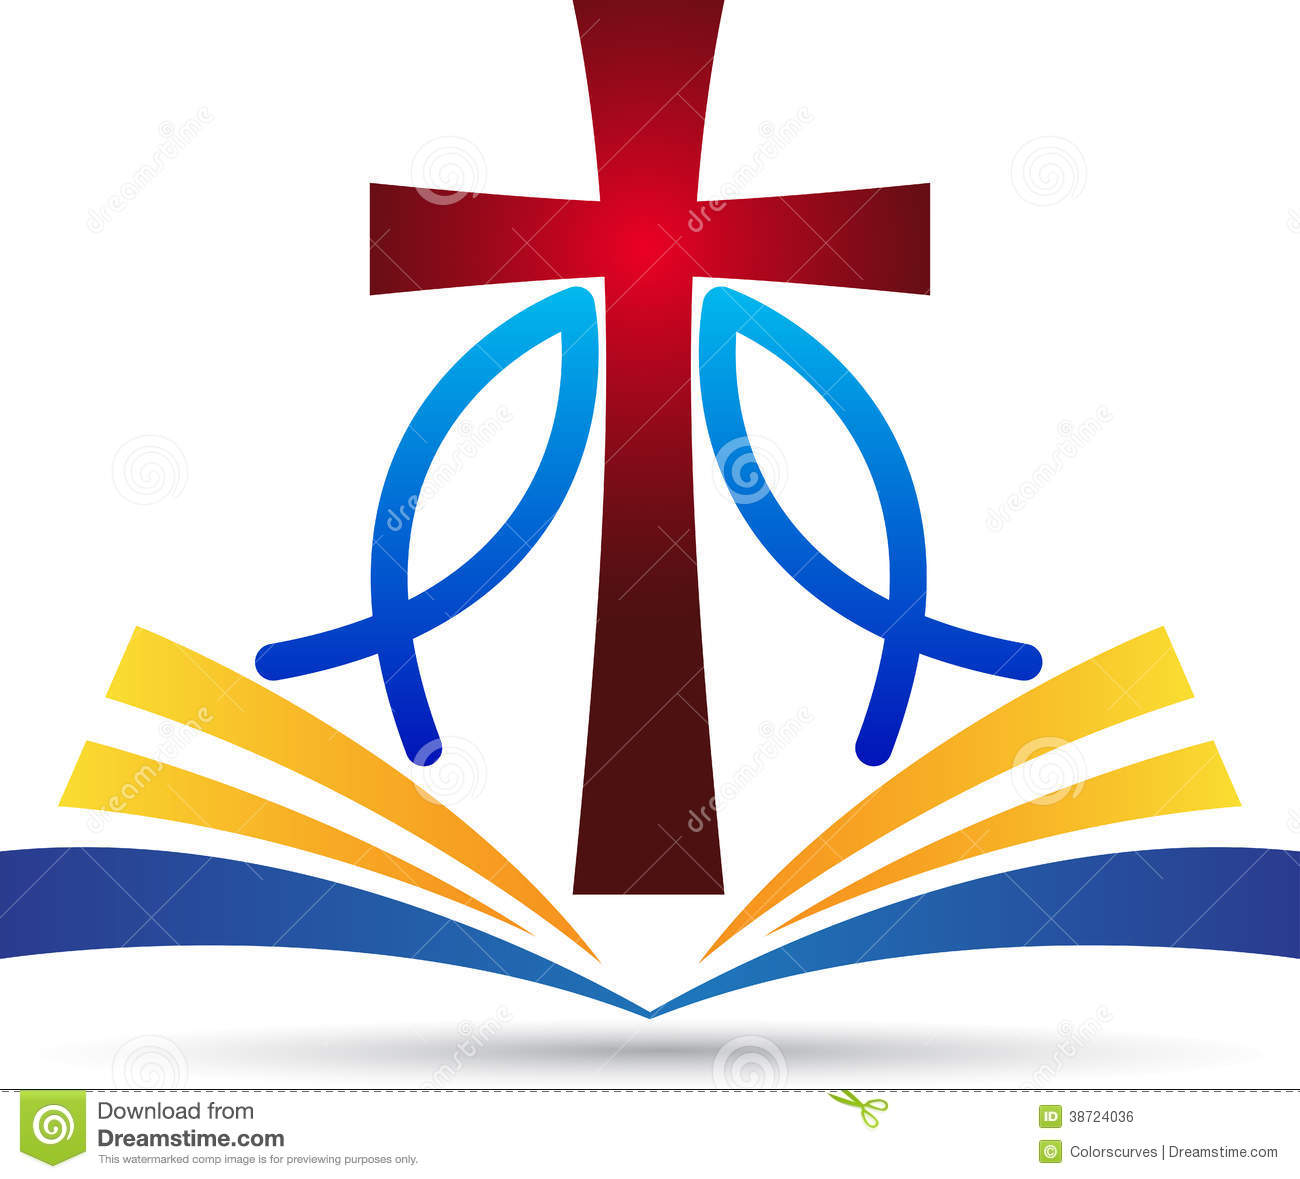 hight resolution of a vector drawing represents jesus cross bible fish design